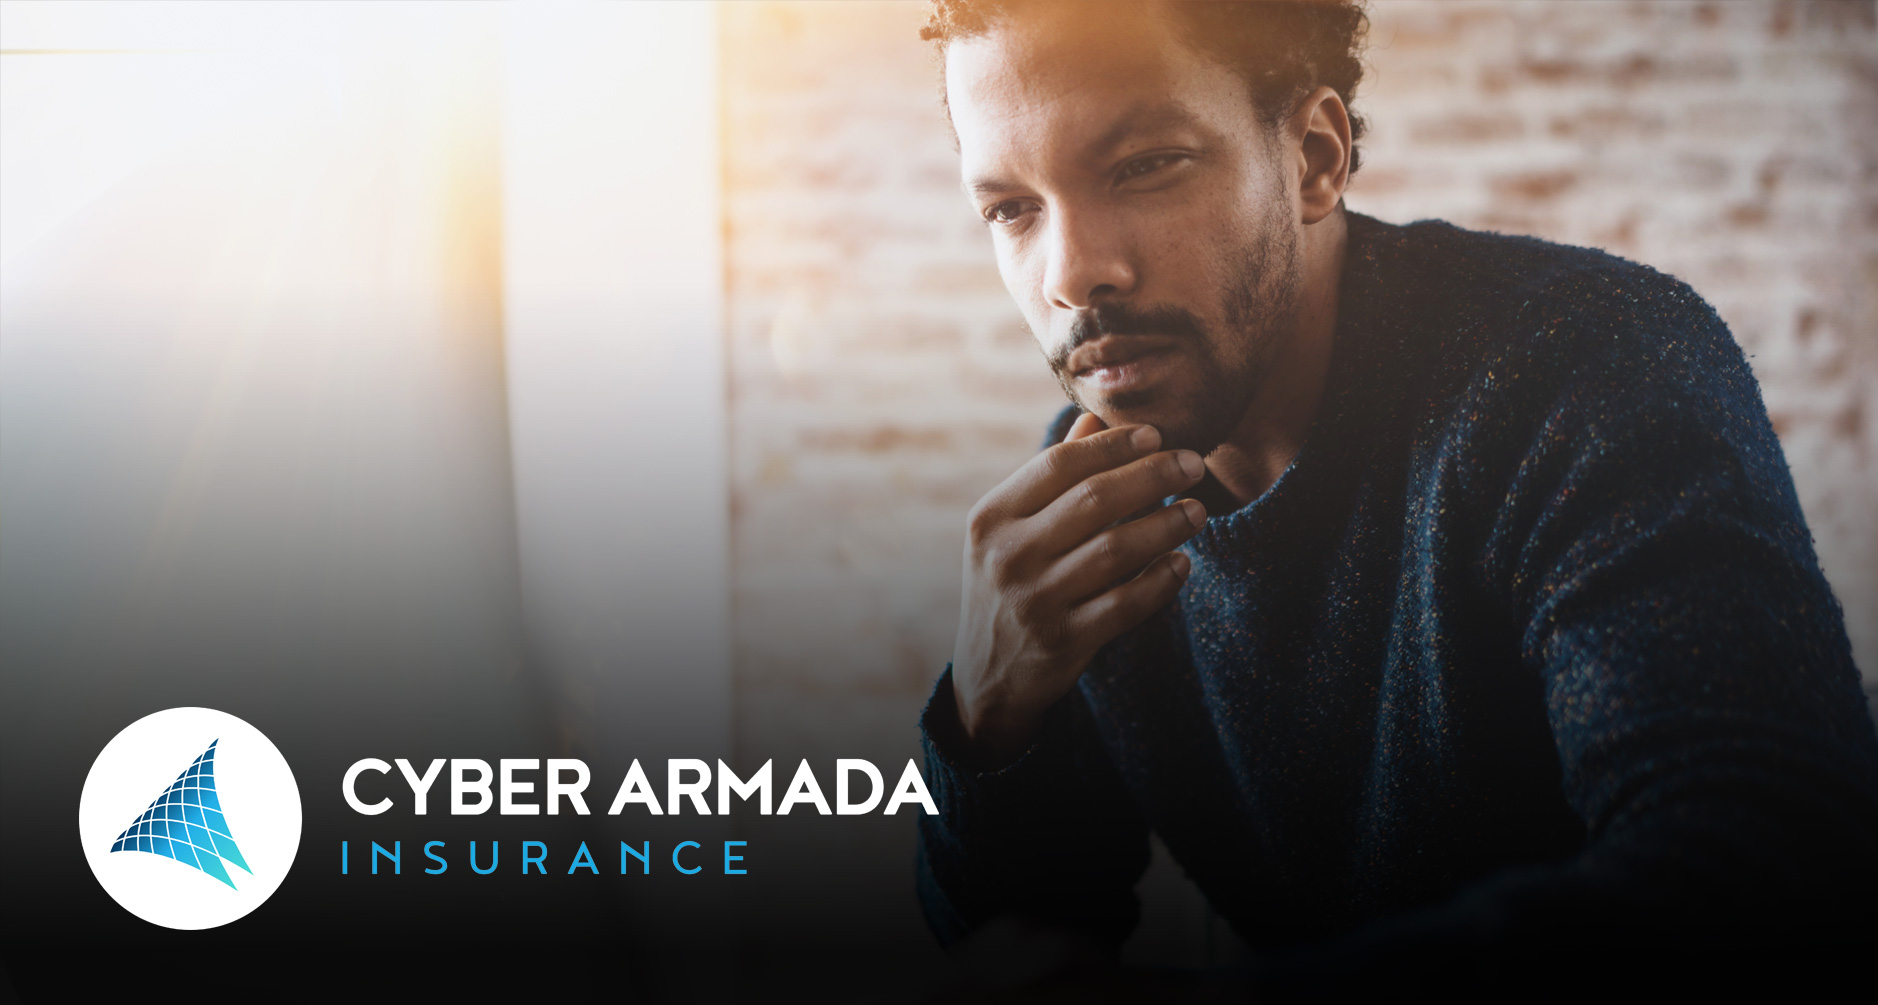 Is Cyber Insurance Worthwhile?